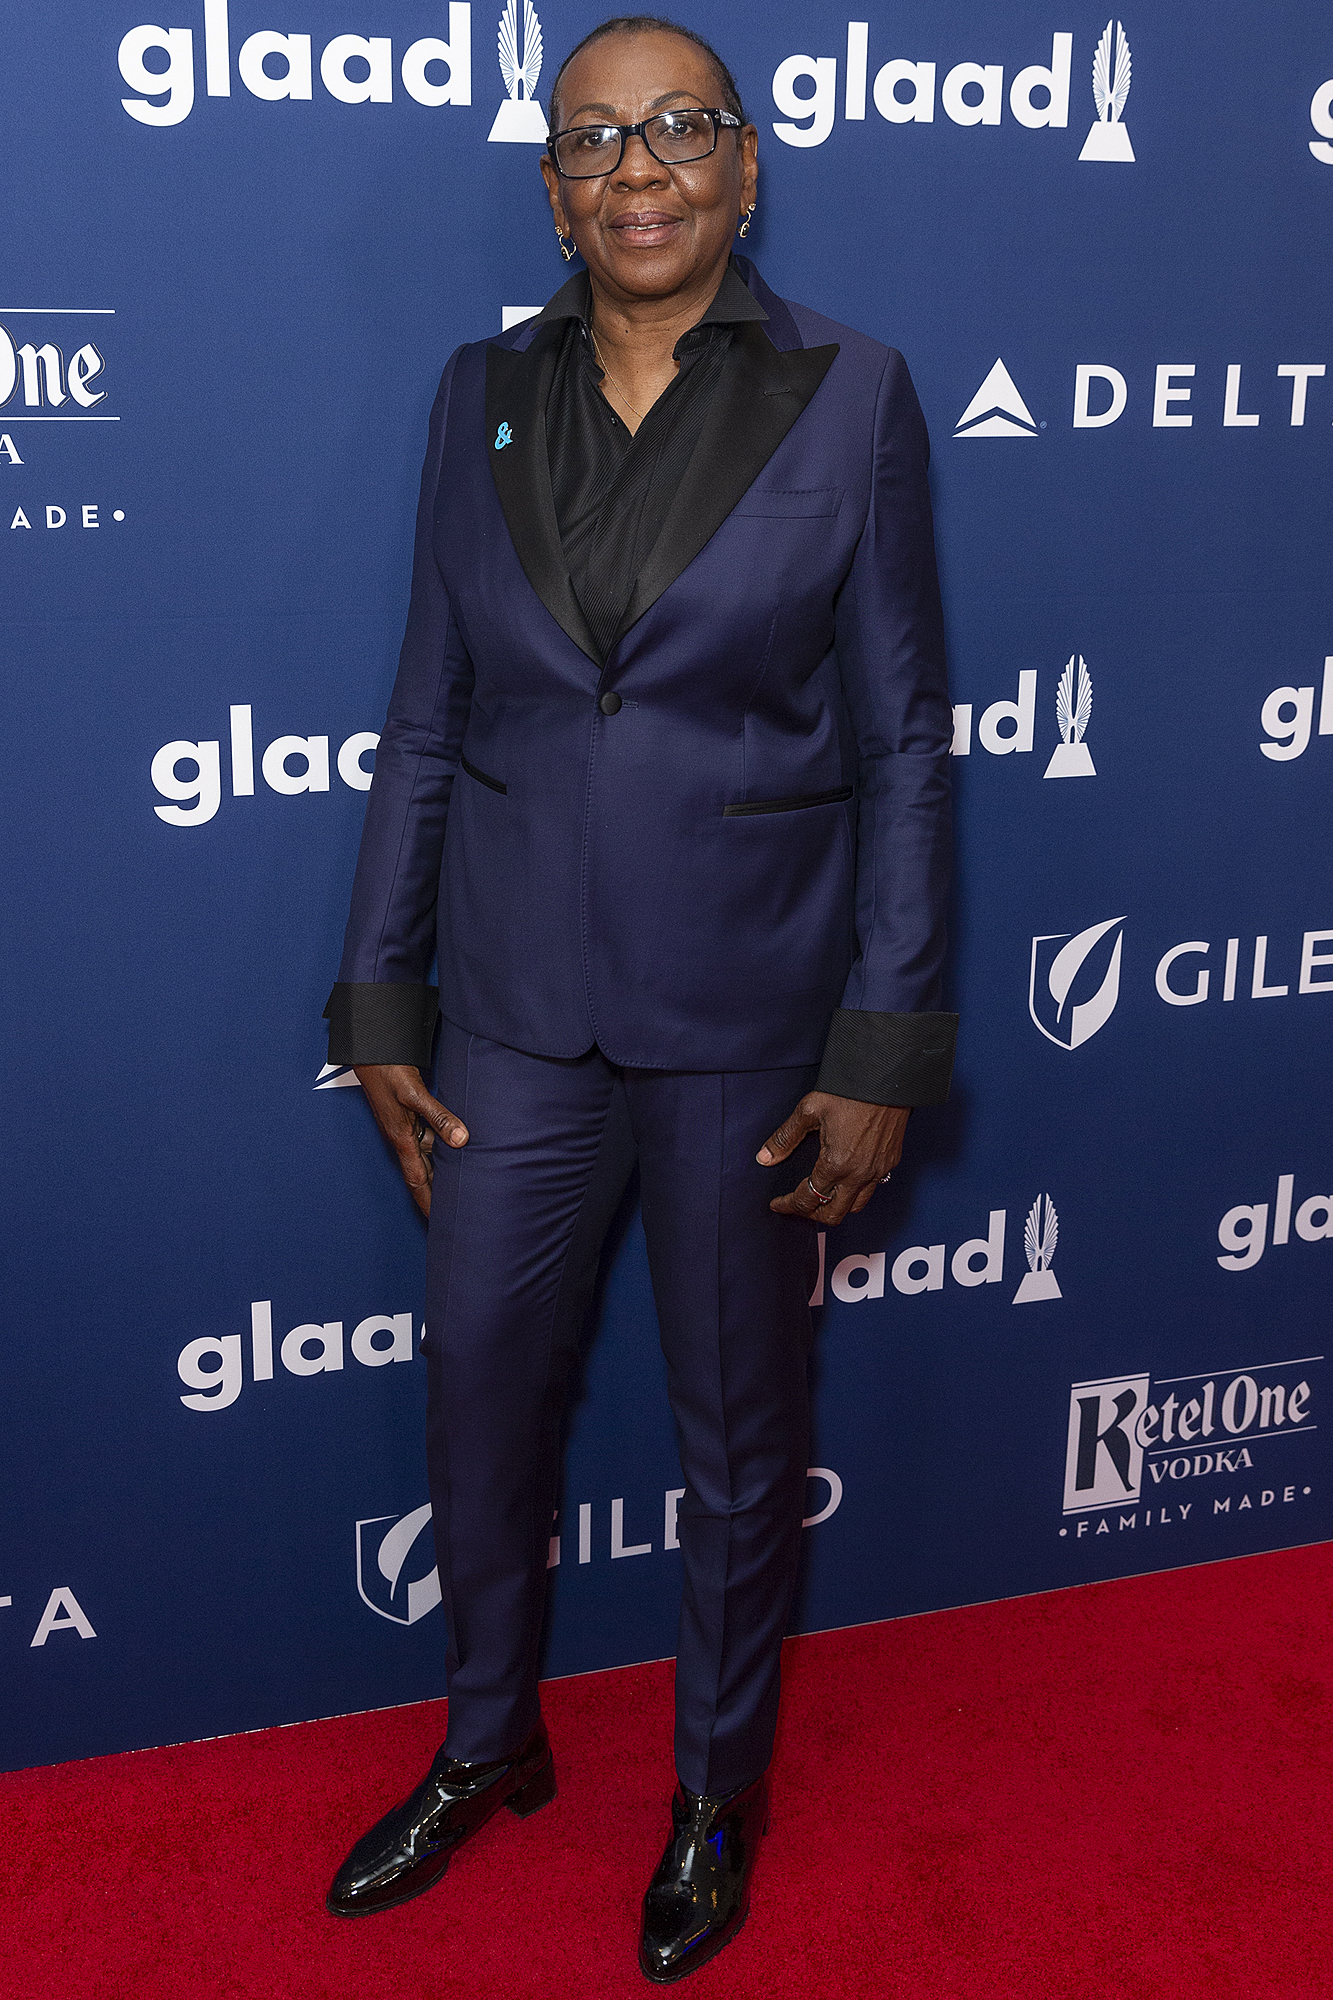 Gloria Carter attends the 29th Annual GLAAD Media Awards at